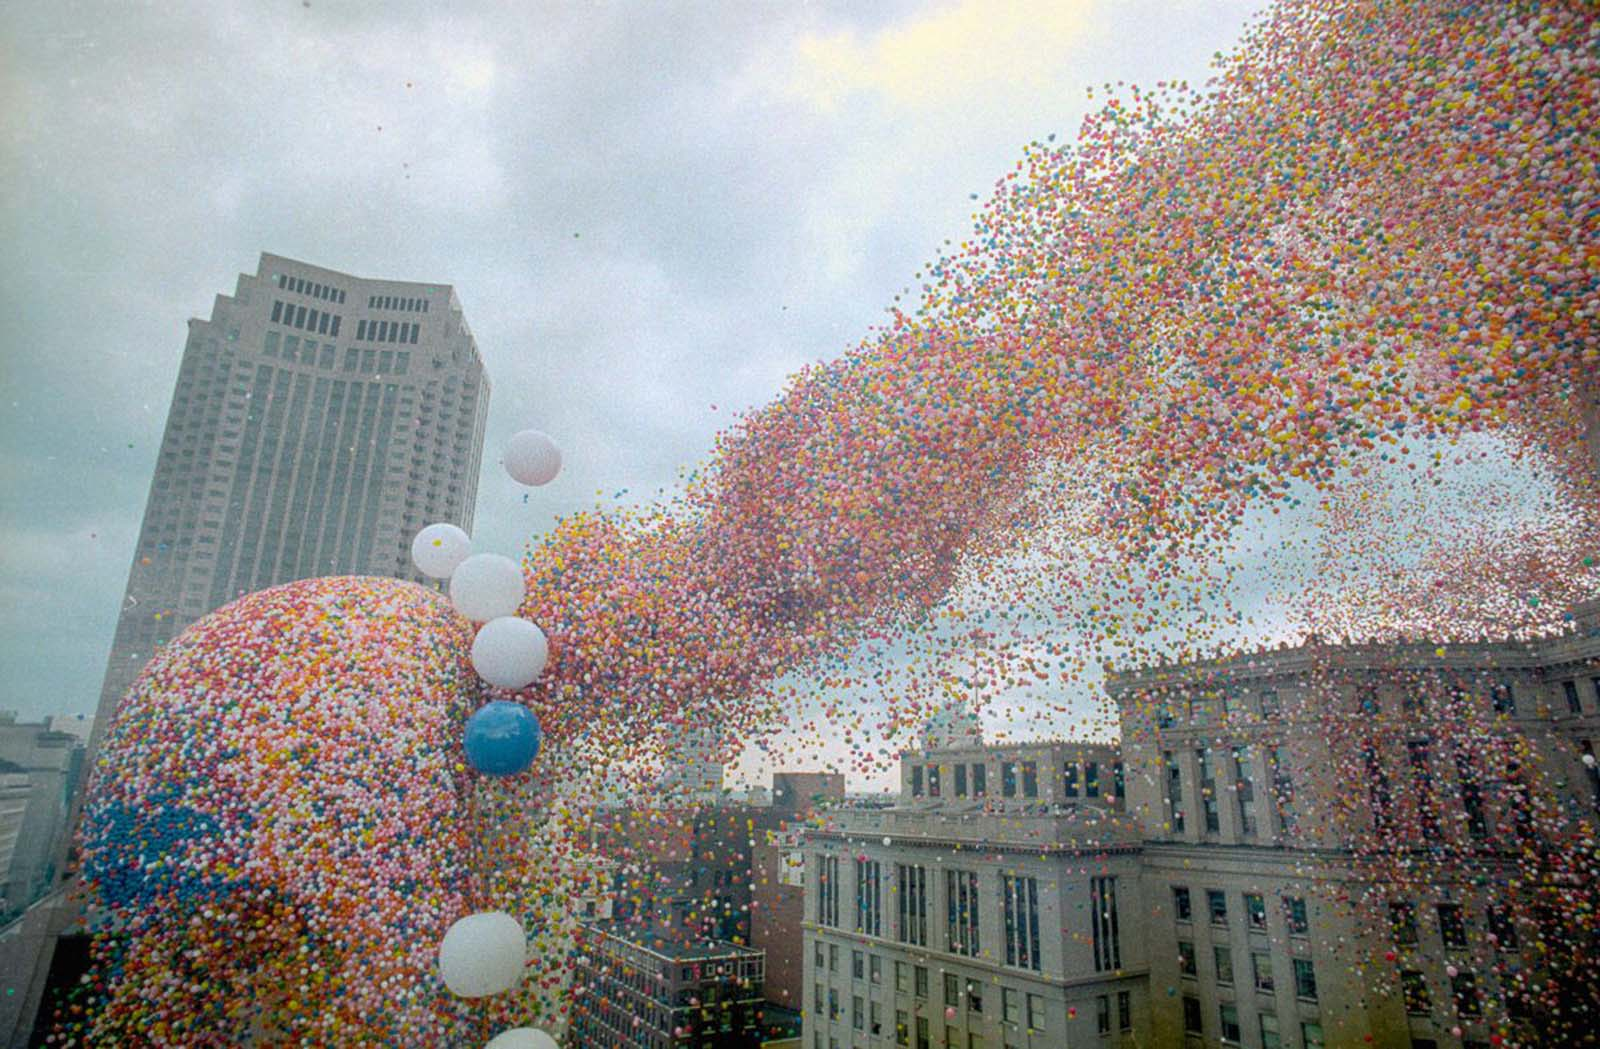 Balloonfest '86 was a 1986 event in which the United Way of Cleveland in Ohio set a world record by releasing almost one-and-a-half million balloons.